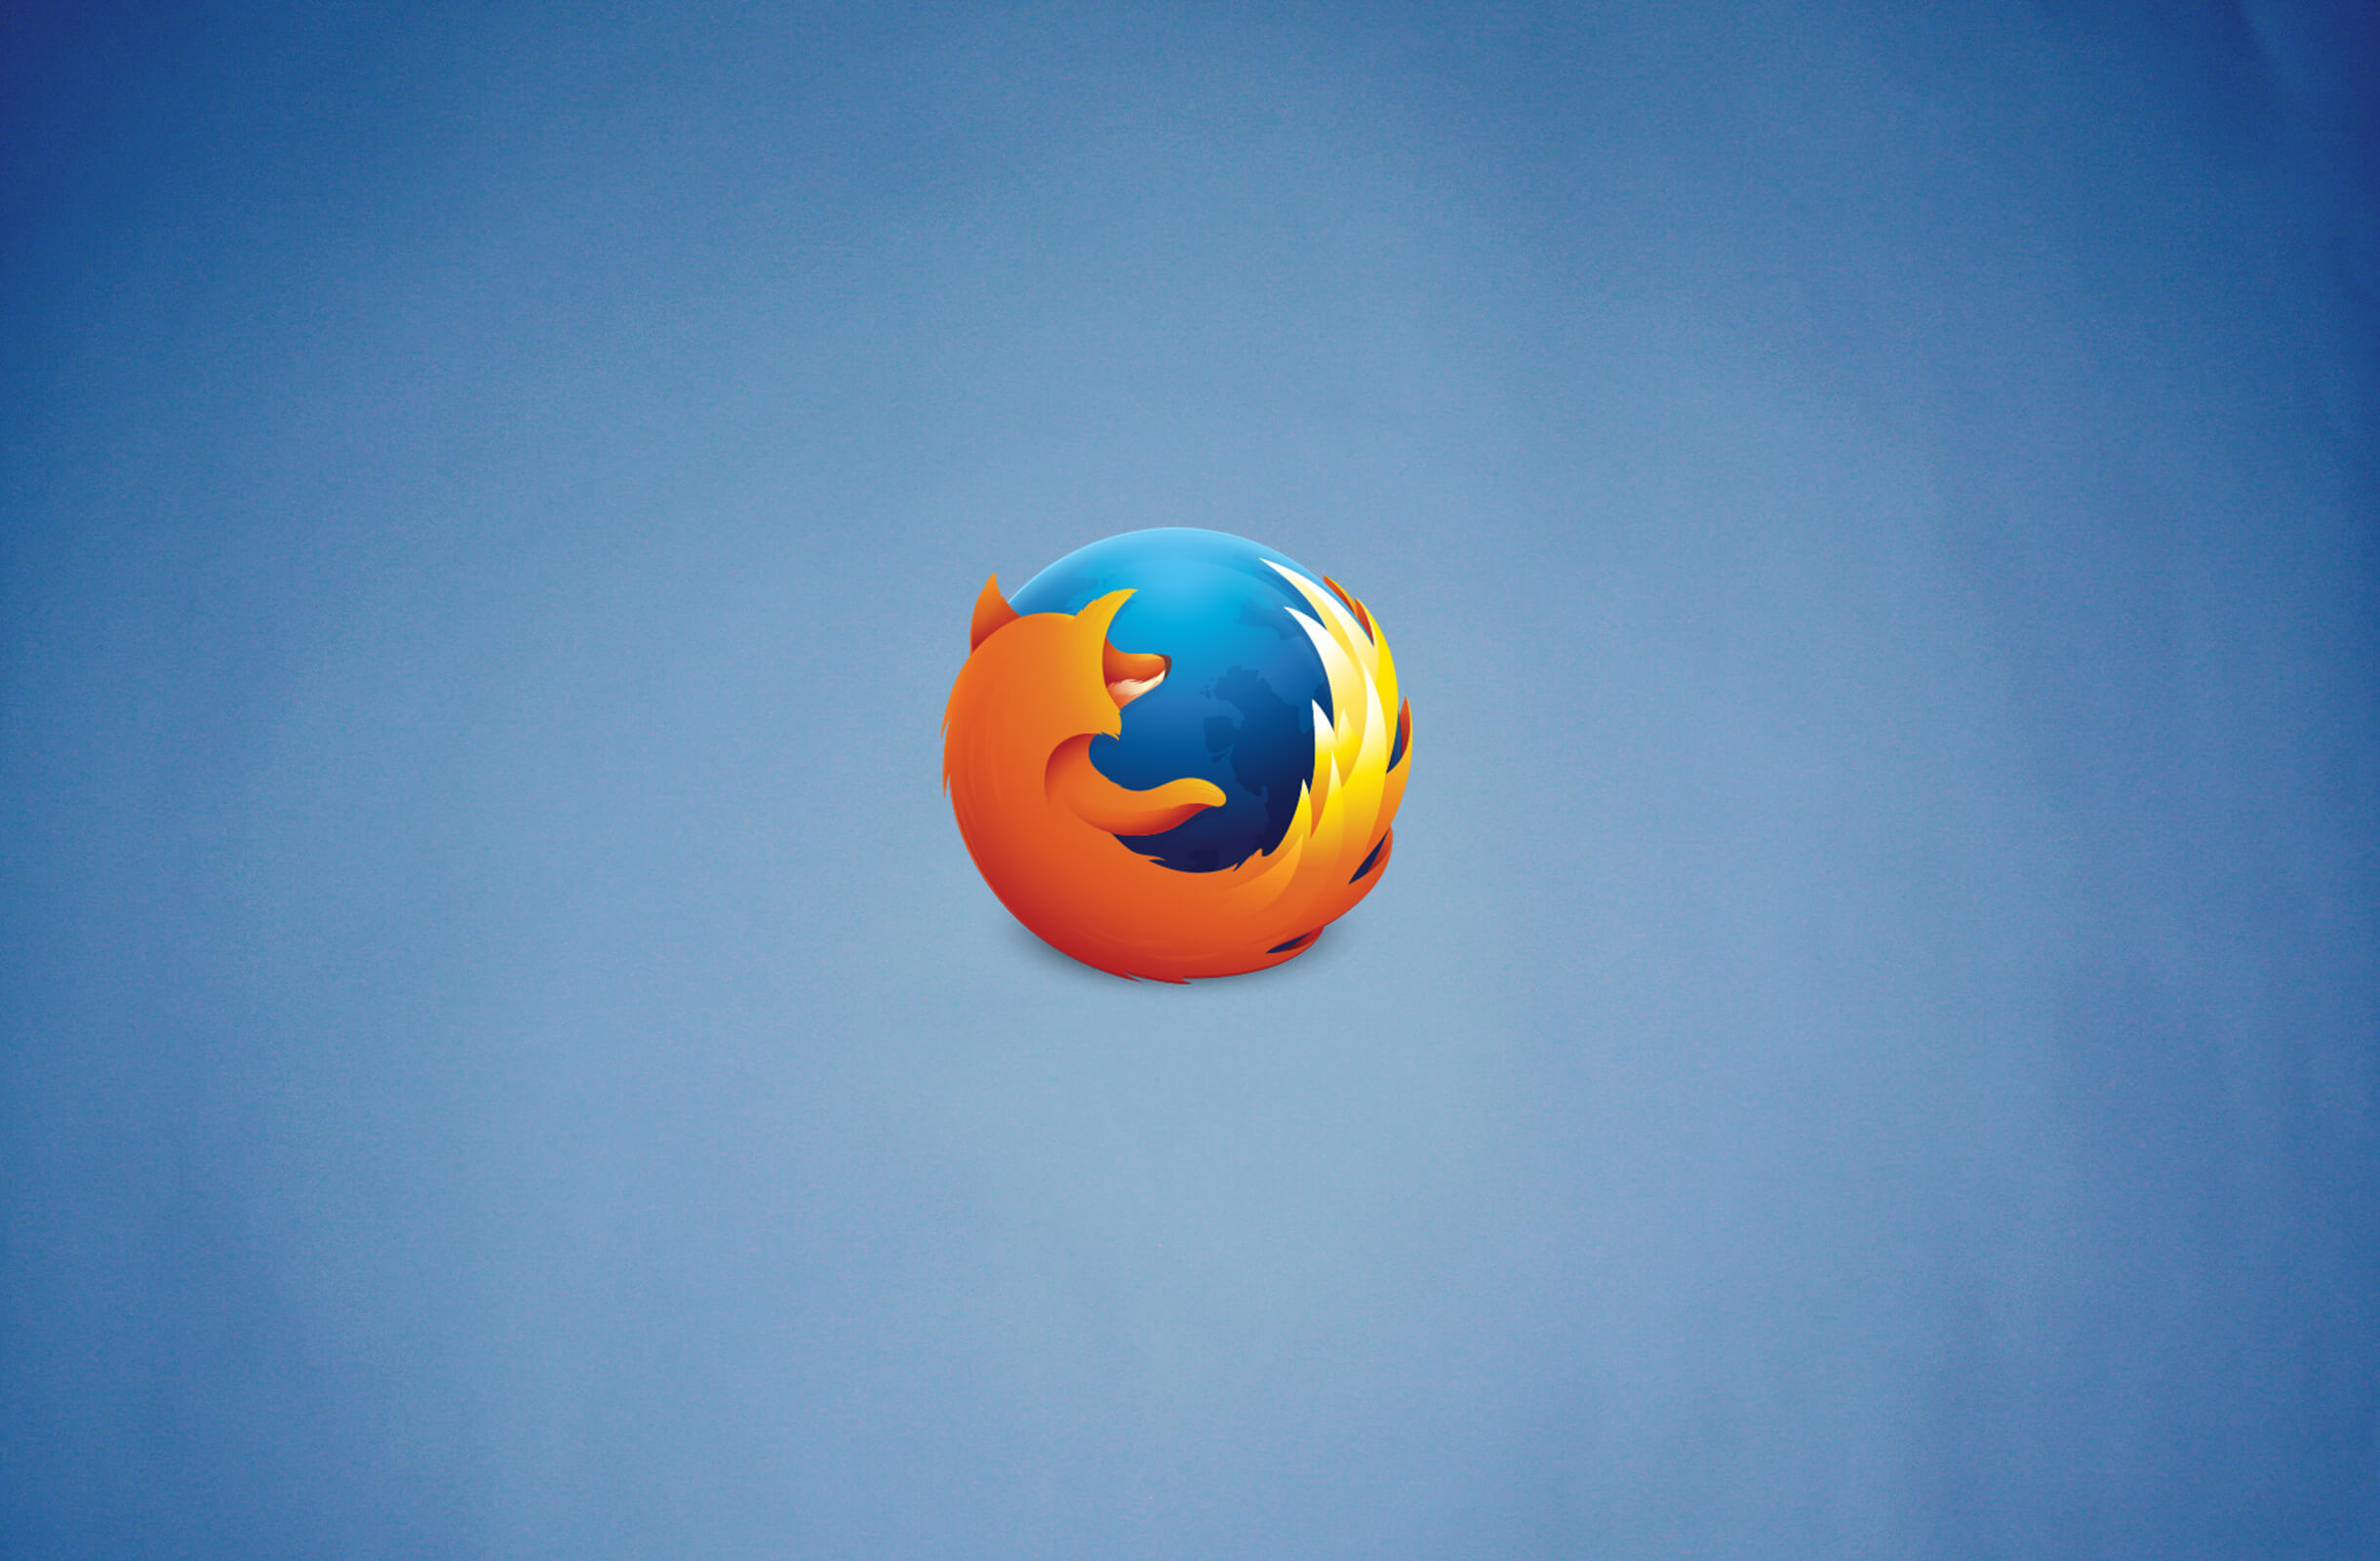 firefox icon logo wallpaper 67327